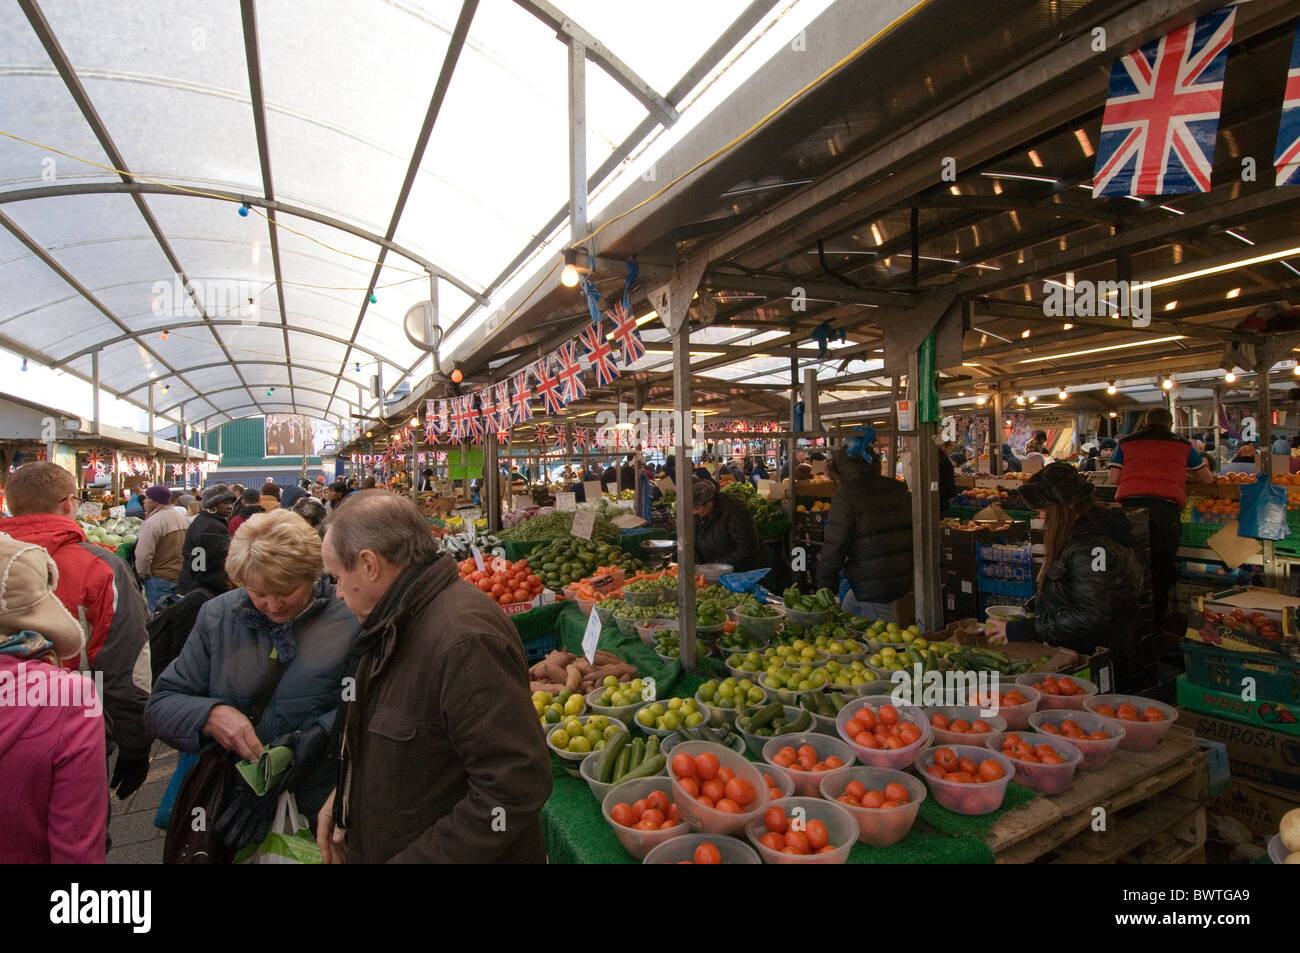 Outdoor Market Stall Stalls Fresh Fruit And Veg Vegetable Vegetables